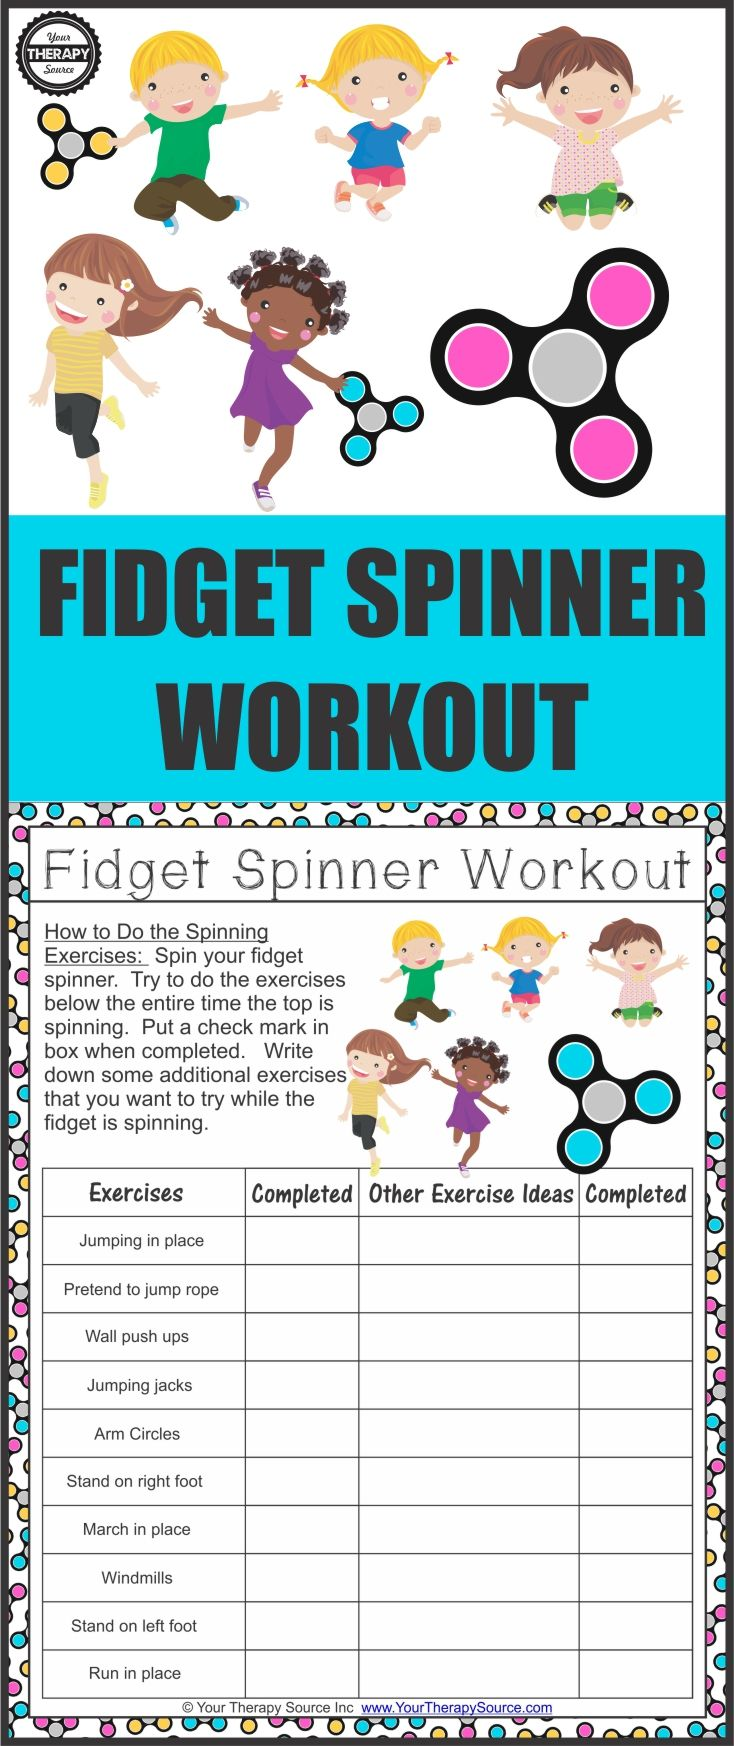 Fidget Spinner Workout - Exercise While It Spins | Pinterest | Spin ...